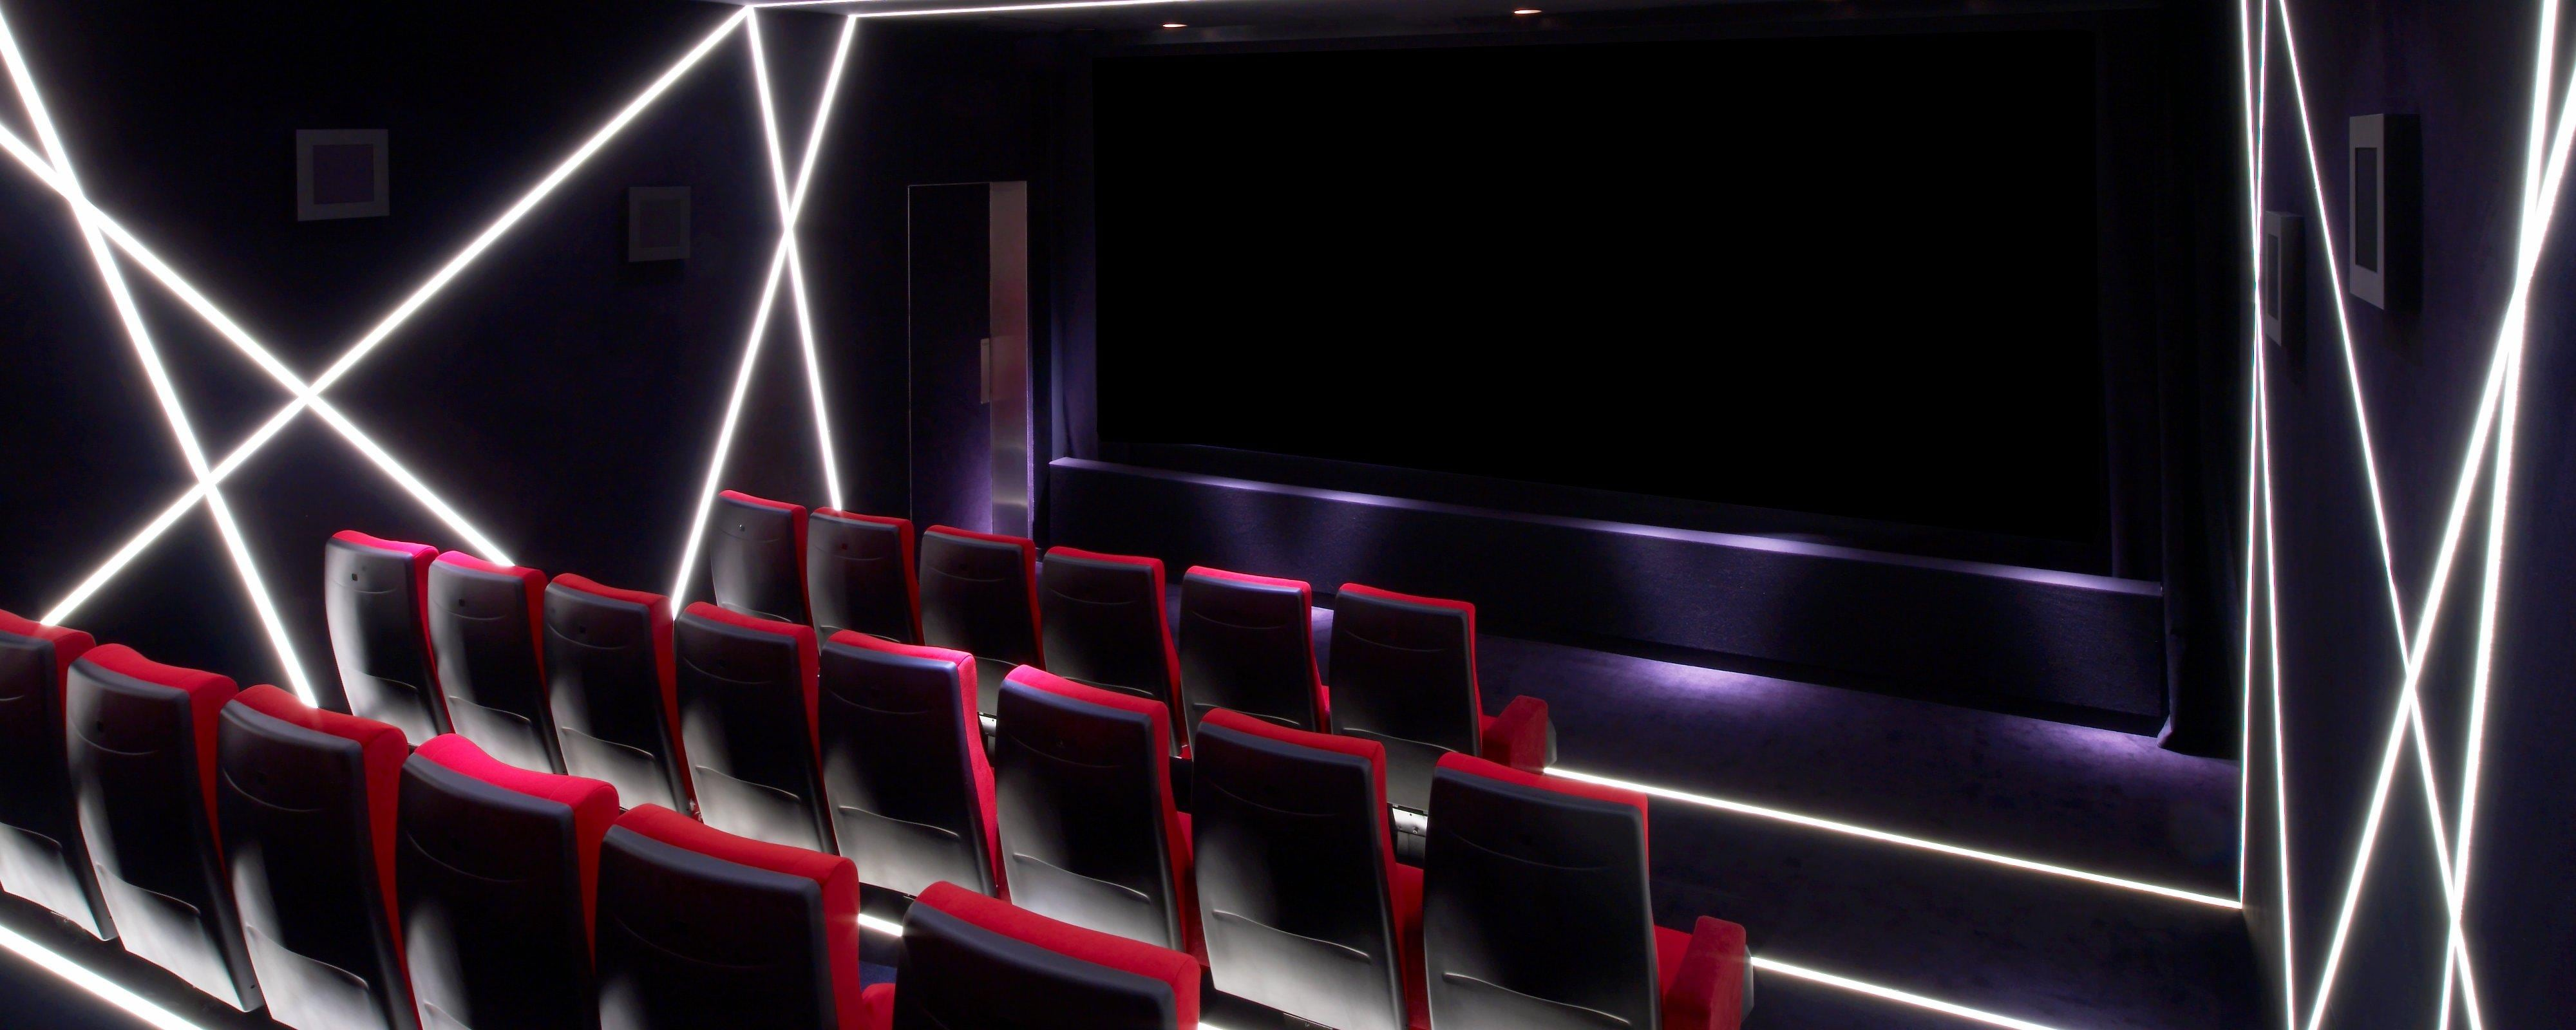 Screening Room